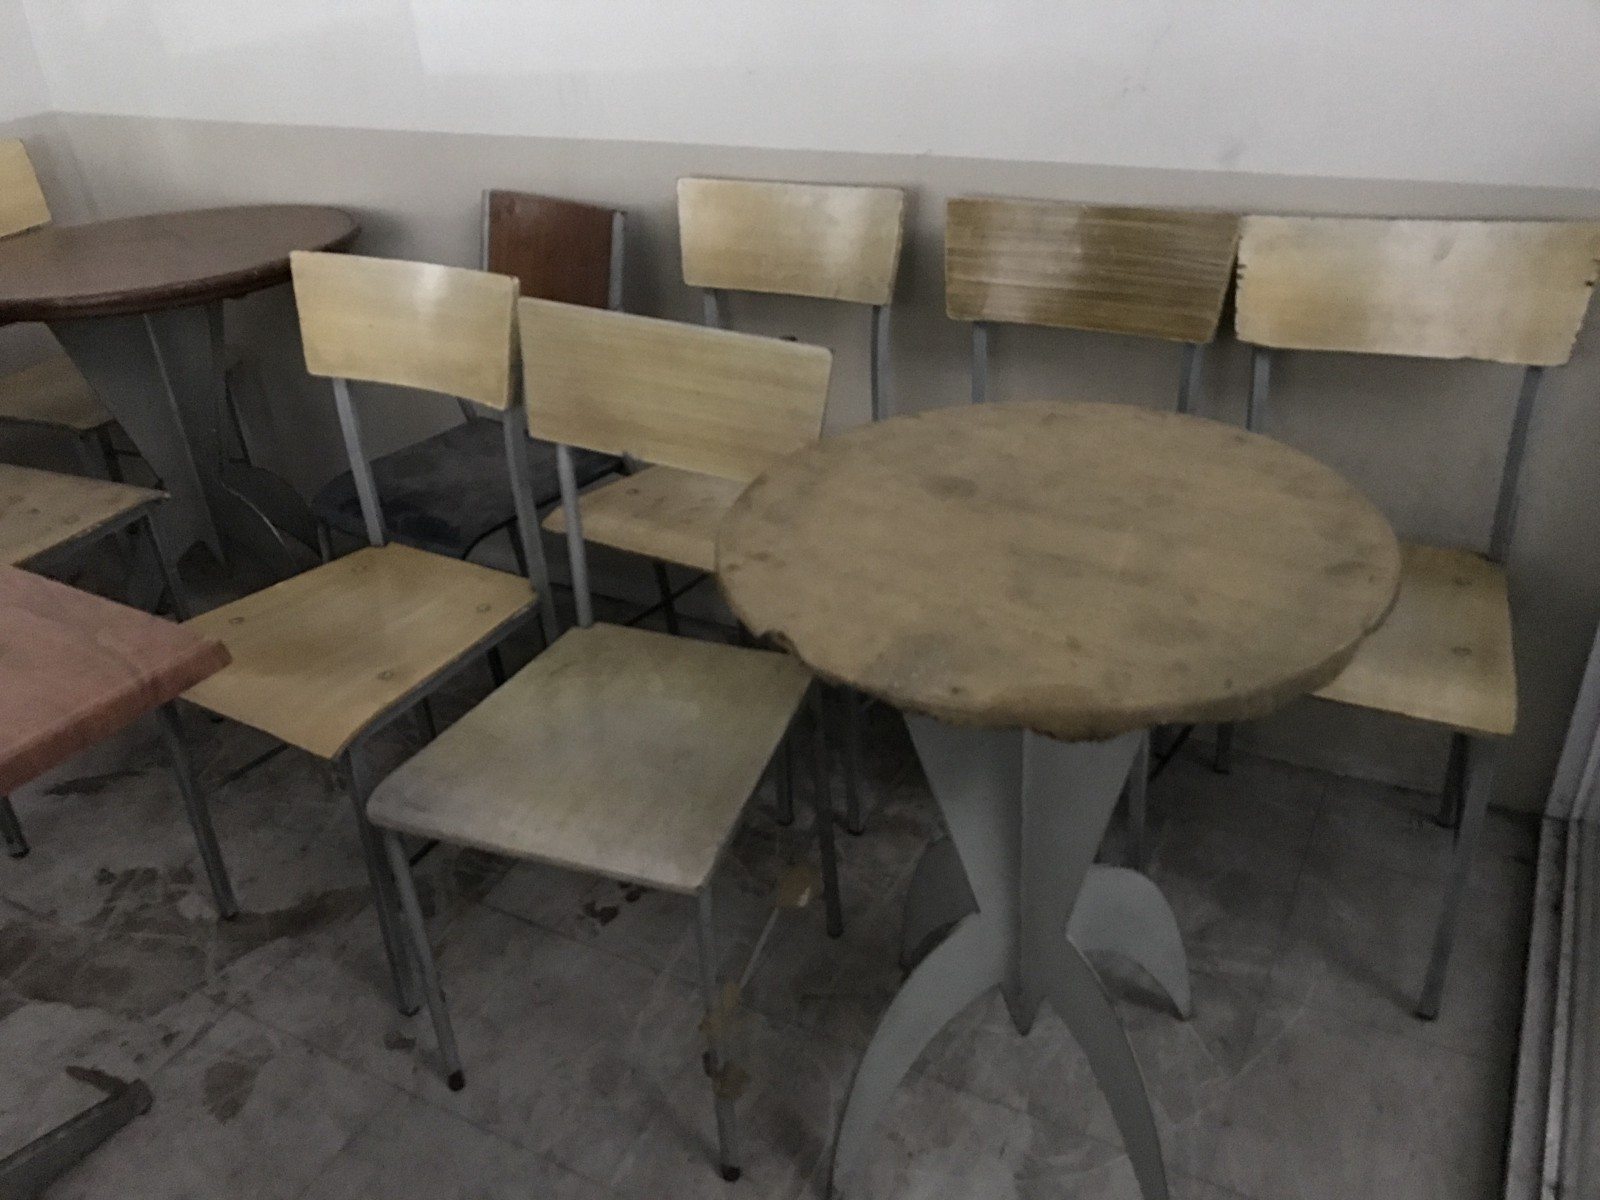 looking for used restaurant chair and table megaoffice surplus rh medium com Used Oak Dining Room Chairs Used Oak Dining Room Chairs